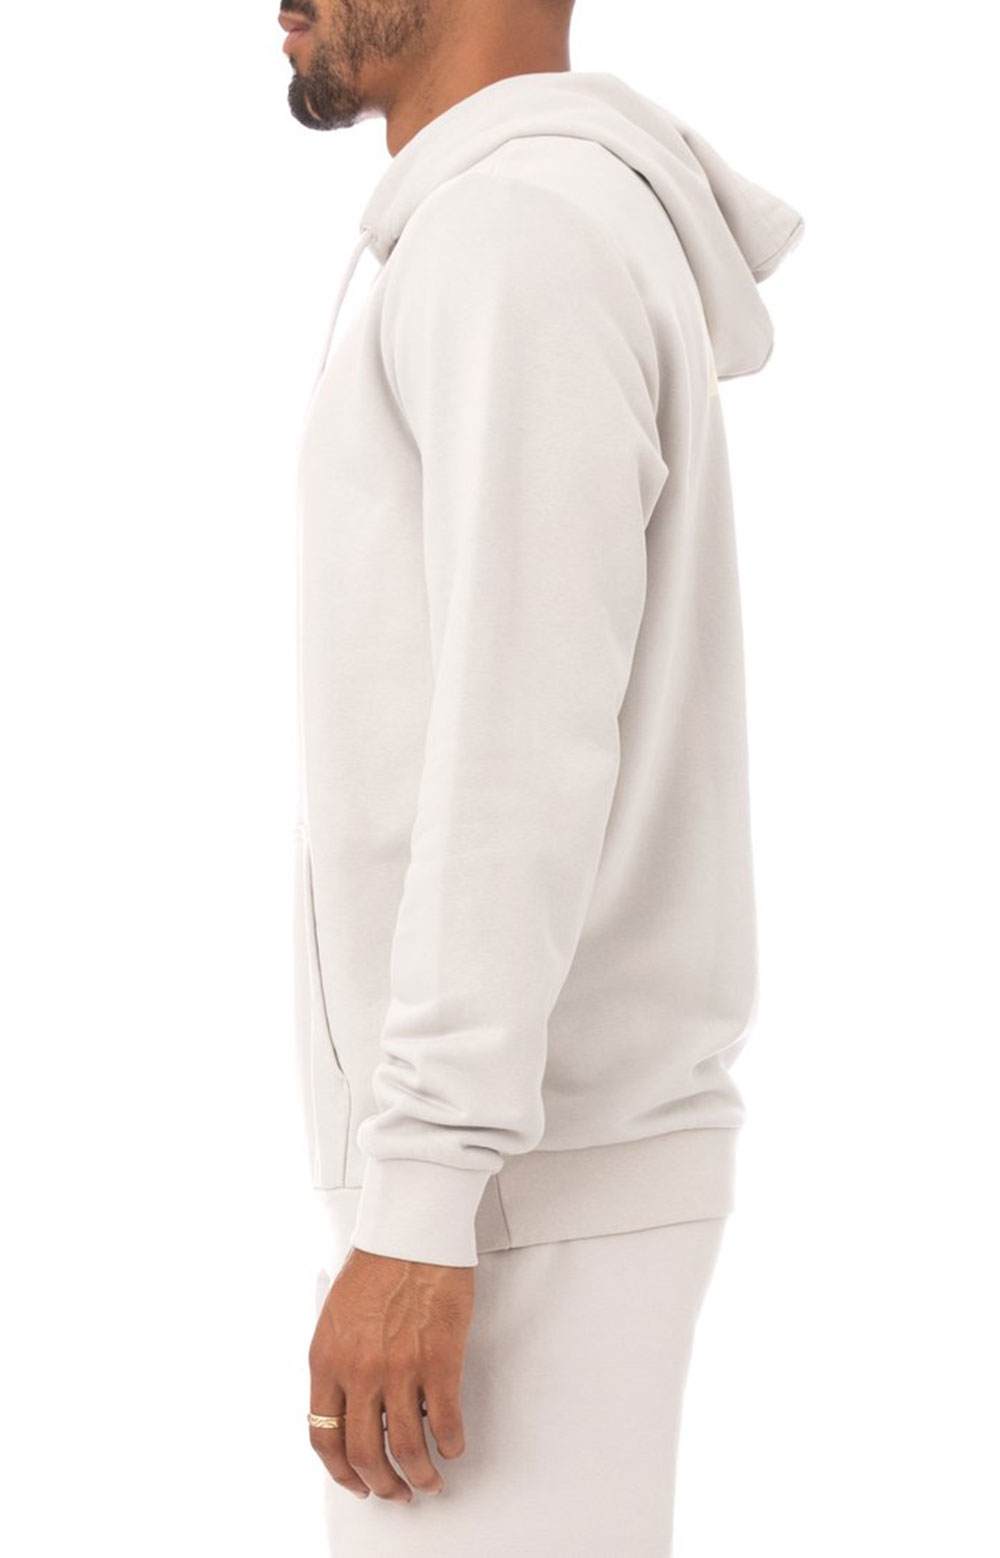 Authentic Haris Pullover Hoodie - Grey Silver 3